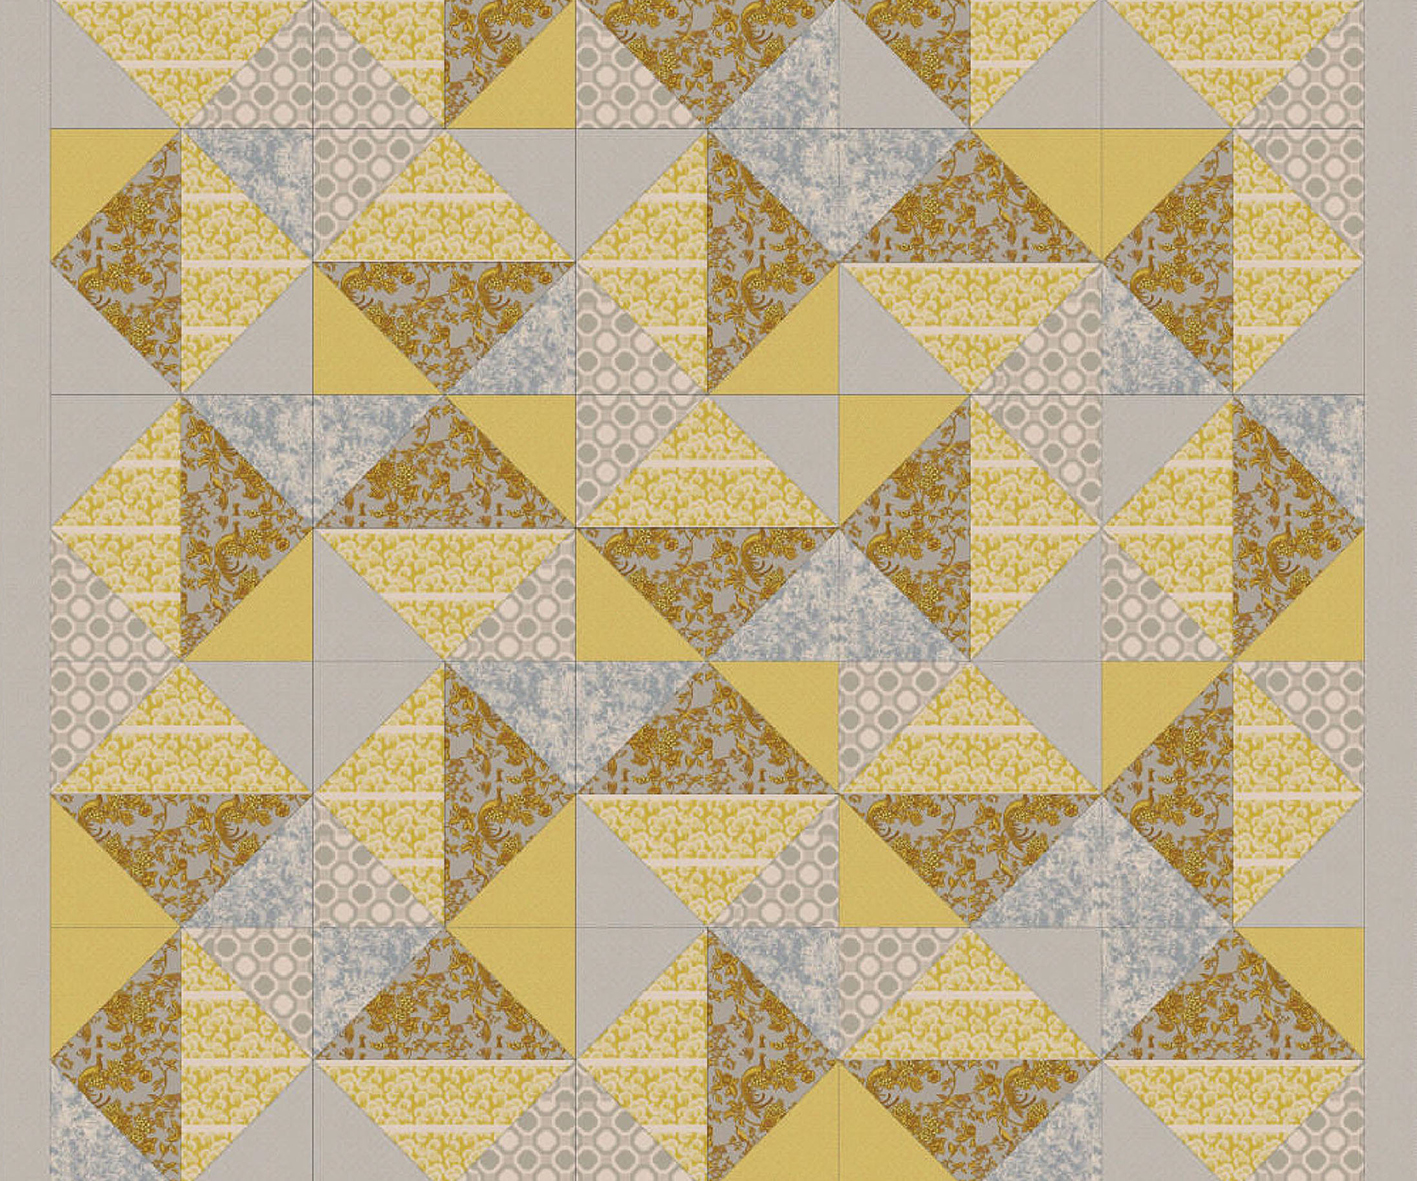 PATCHWORK-INTRO-BANNER - COUTURE-QUILT-SUNSHINE-POST-IMAGE